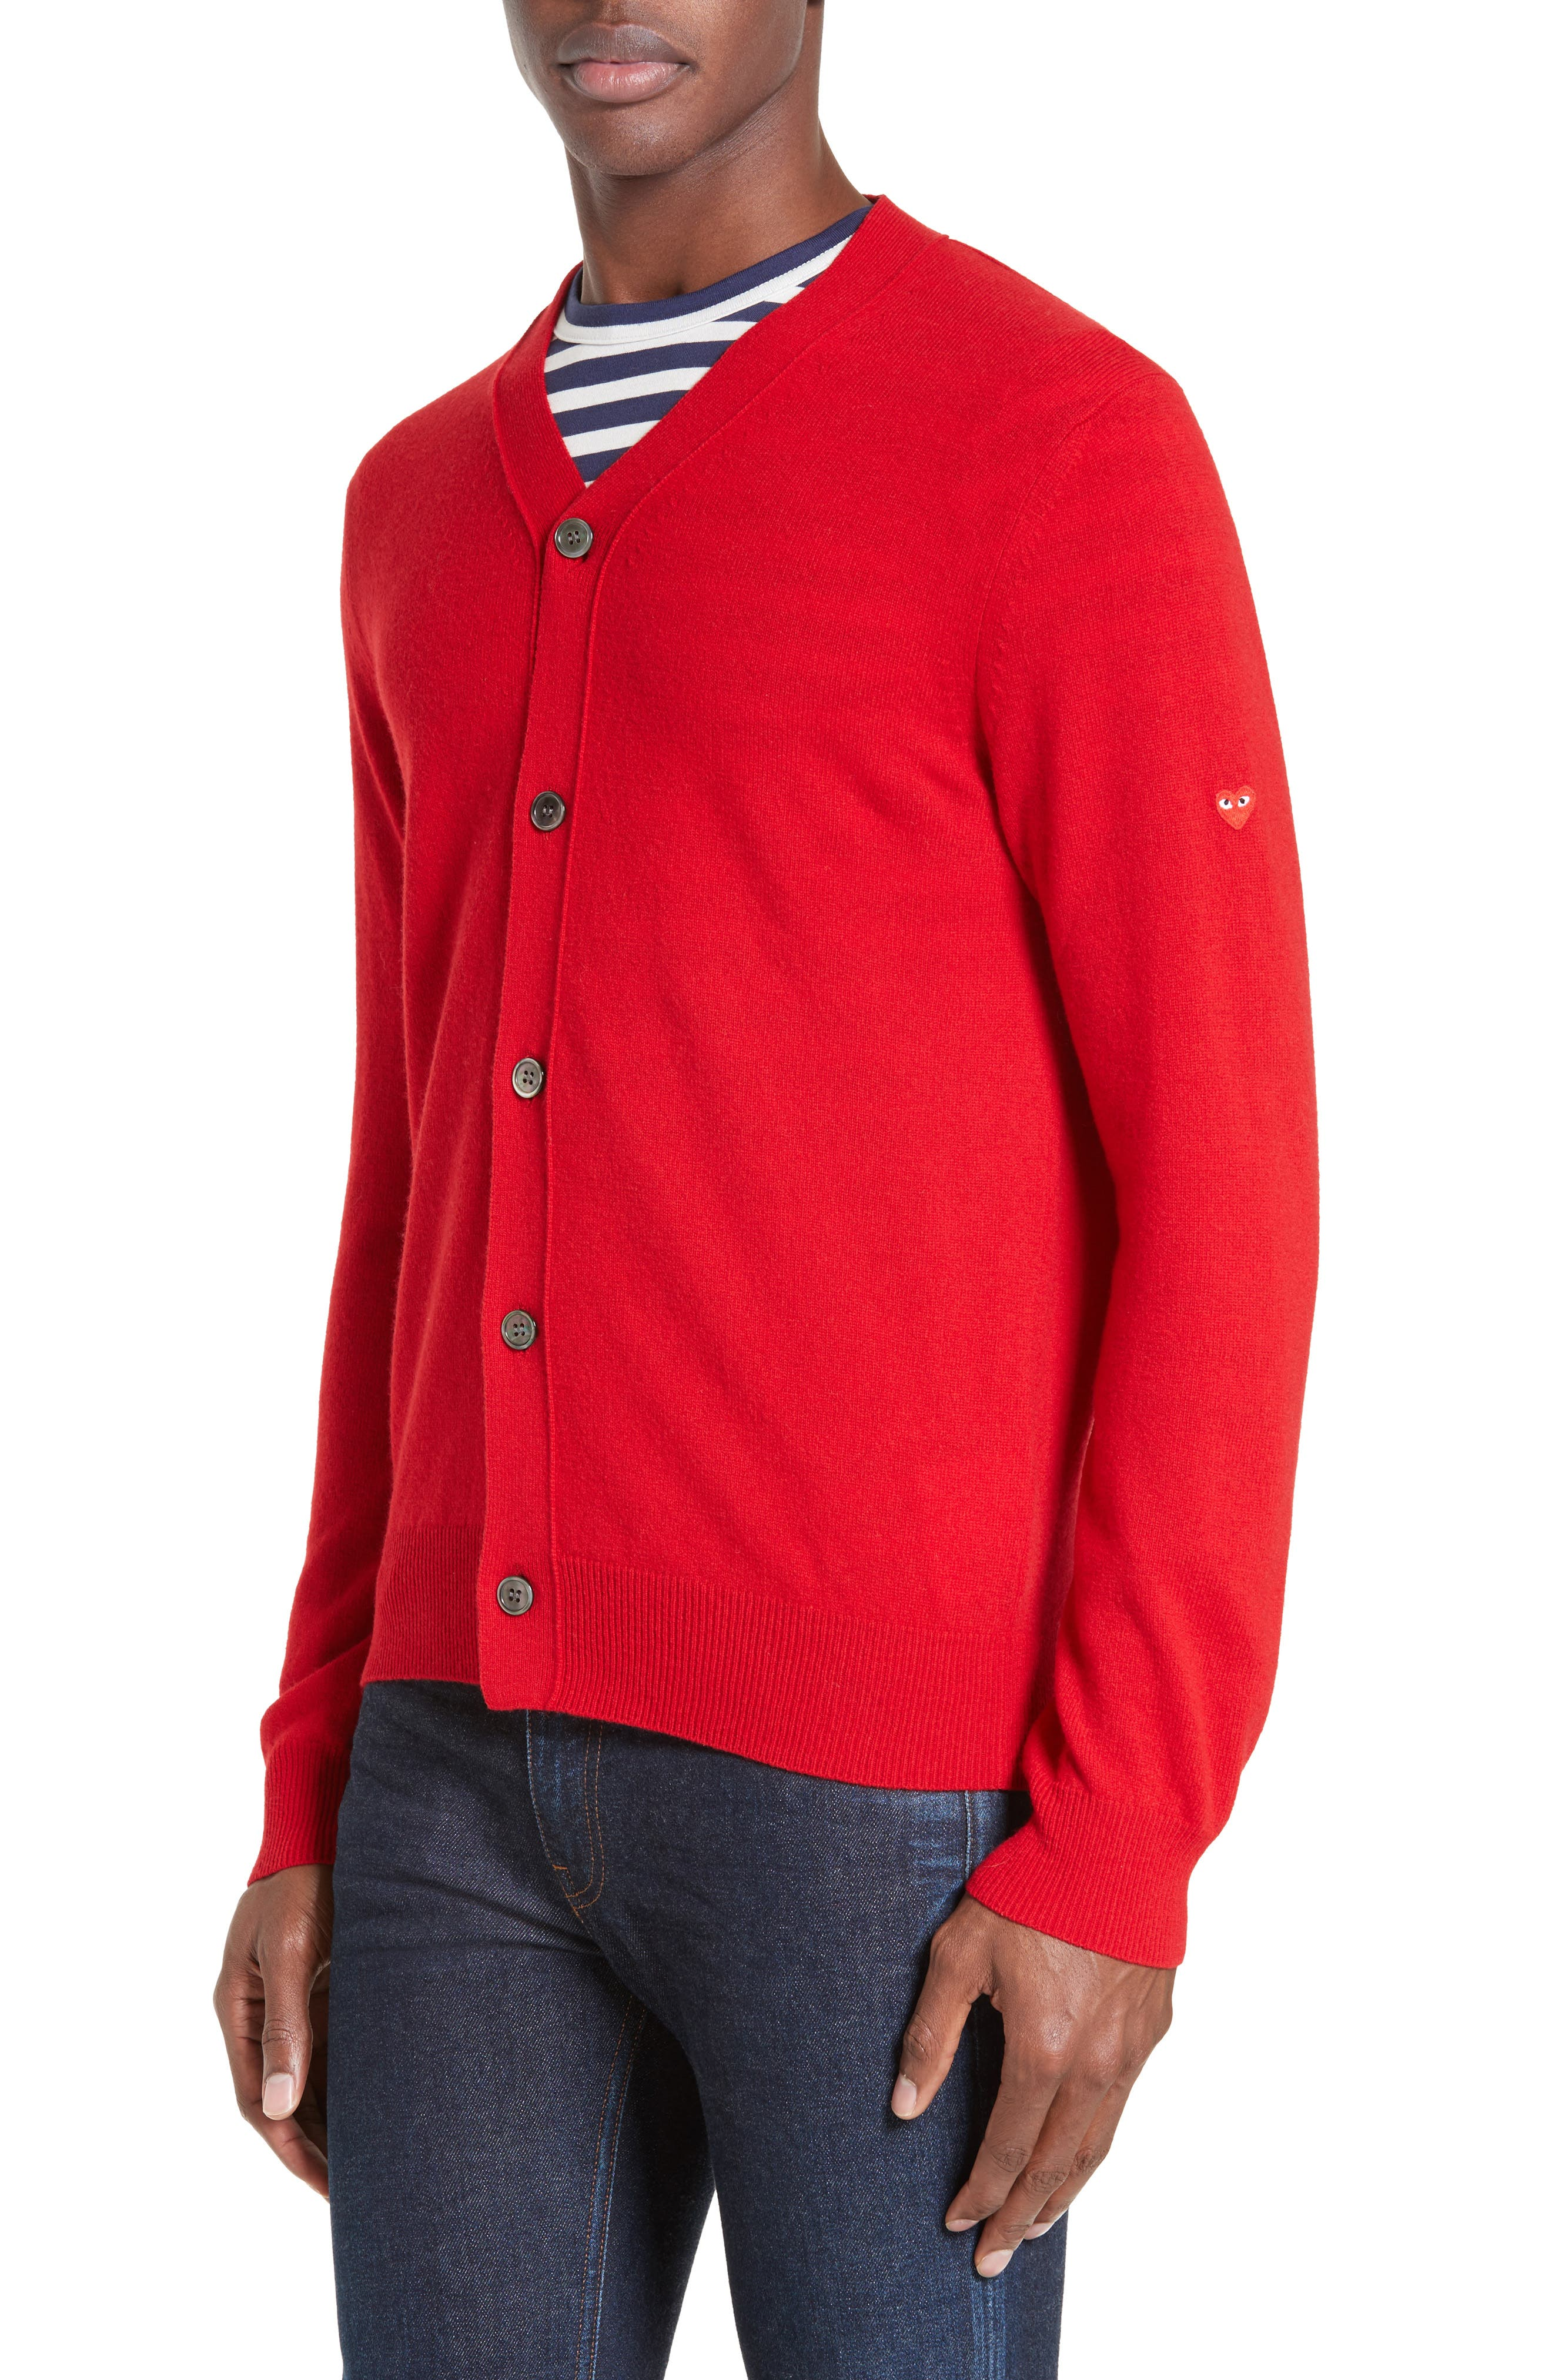 PLAY Wool Cardigan,                         Main,                         color, Red